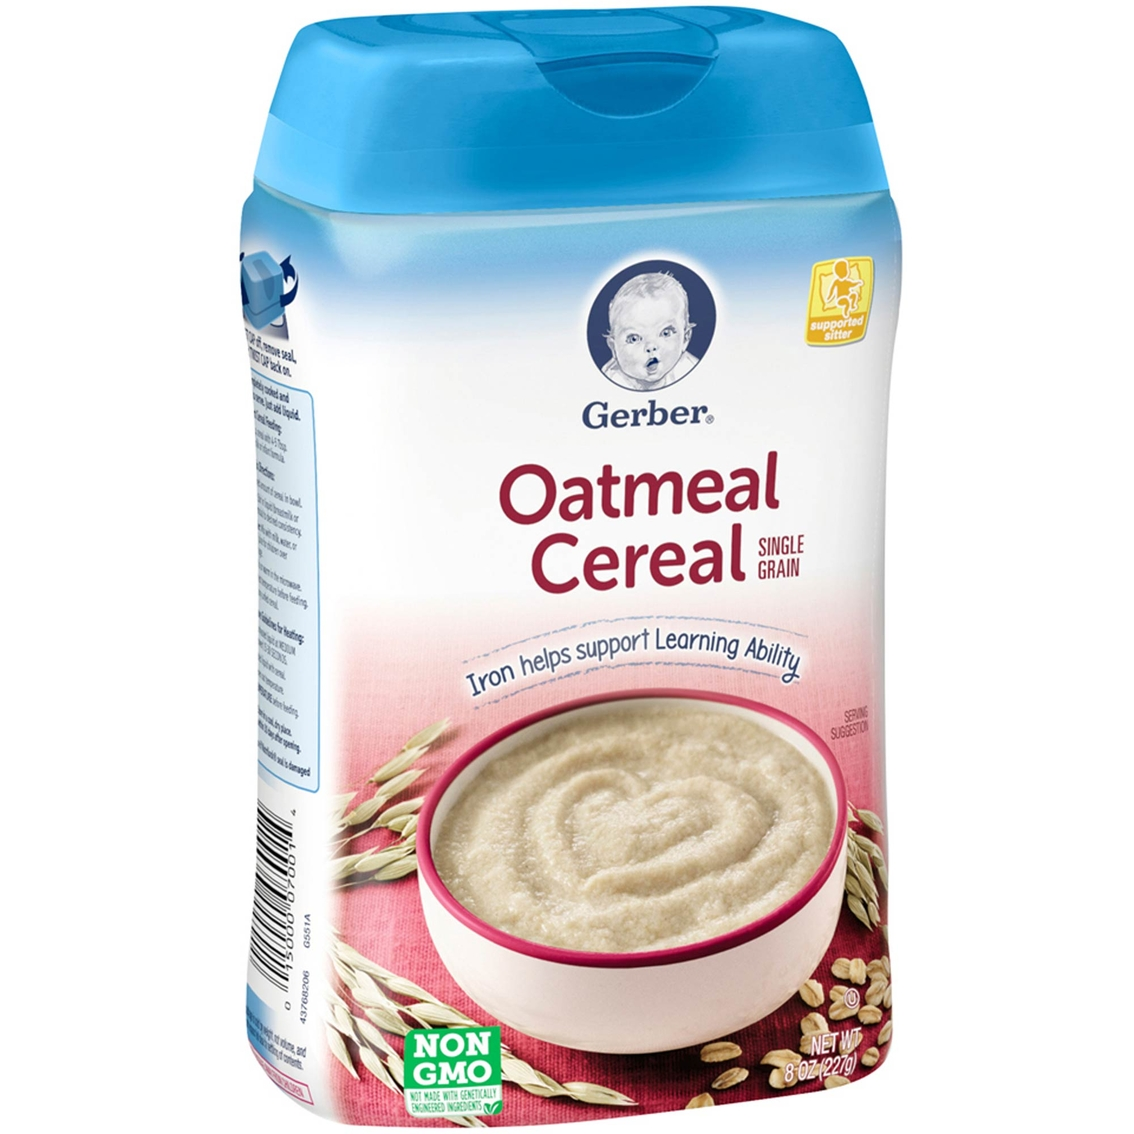 Gerber 8 Oz. Single Grain Oatmeal Cereal